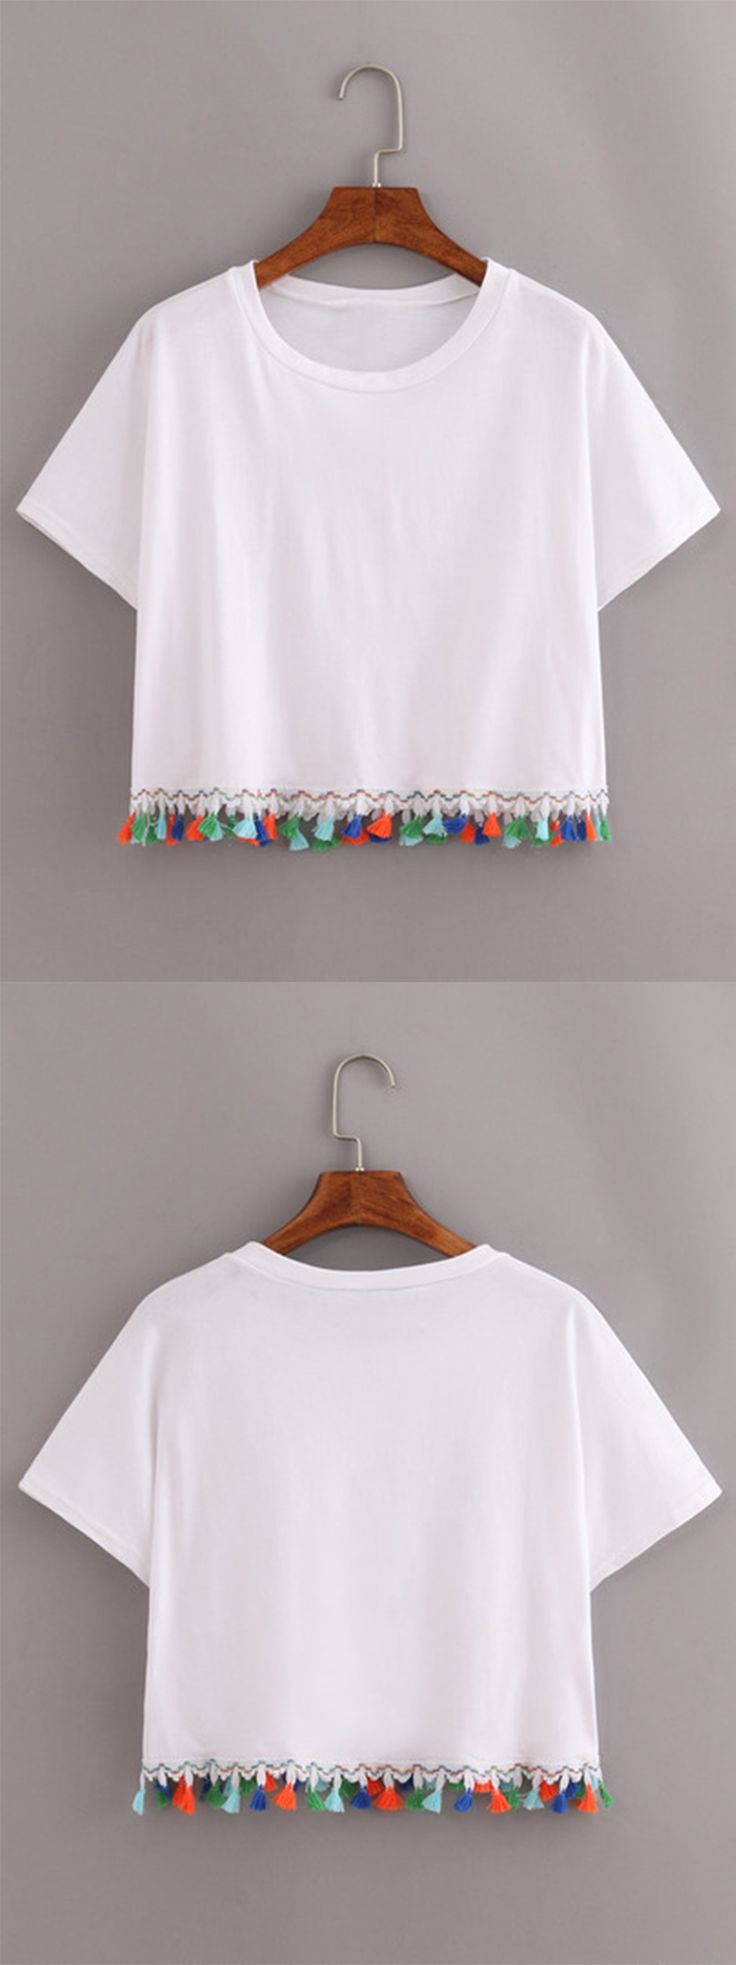 Plain white shirts cheapest t shirt jpg - White Tee Crop Top With Colorful Tassel Fringe Will Look Great With Plain Harem Style Pants